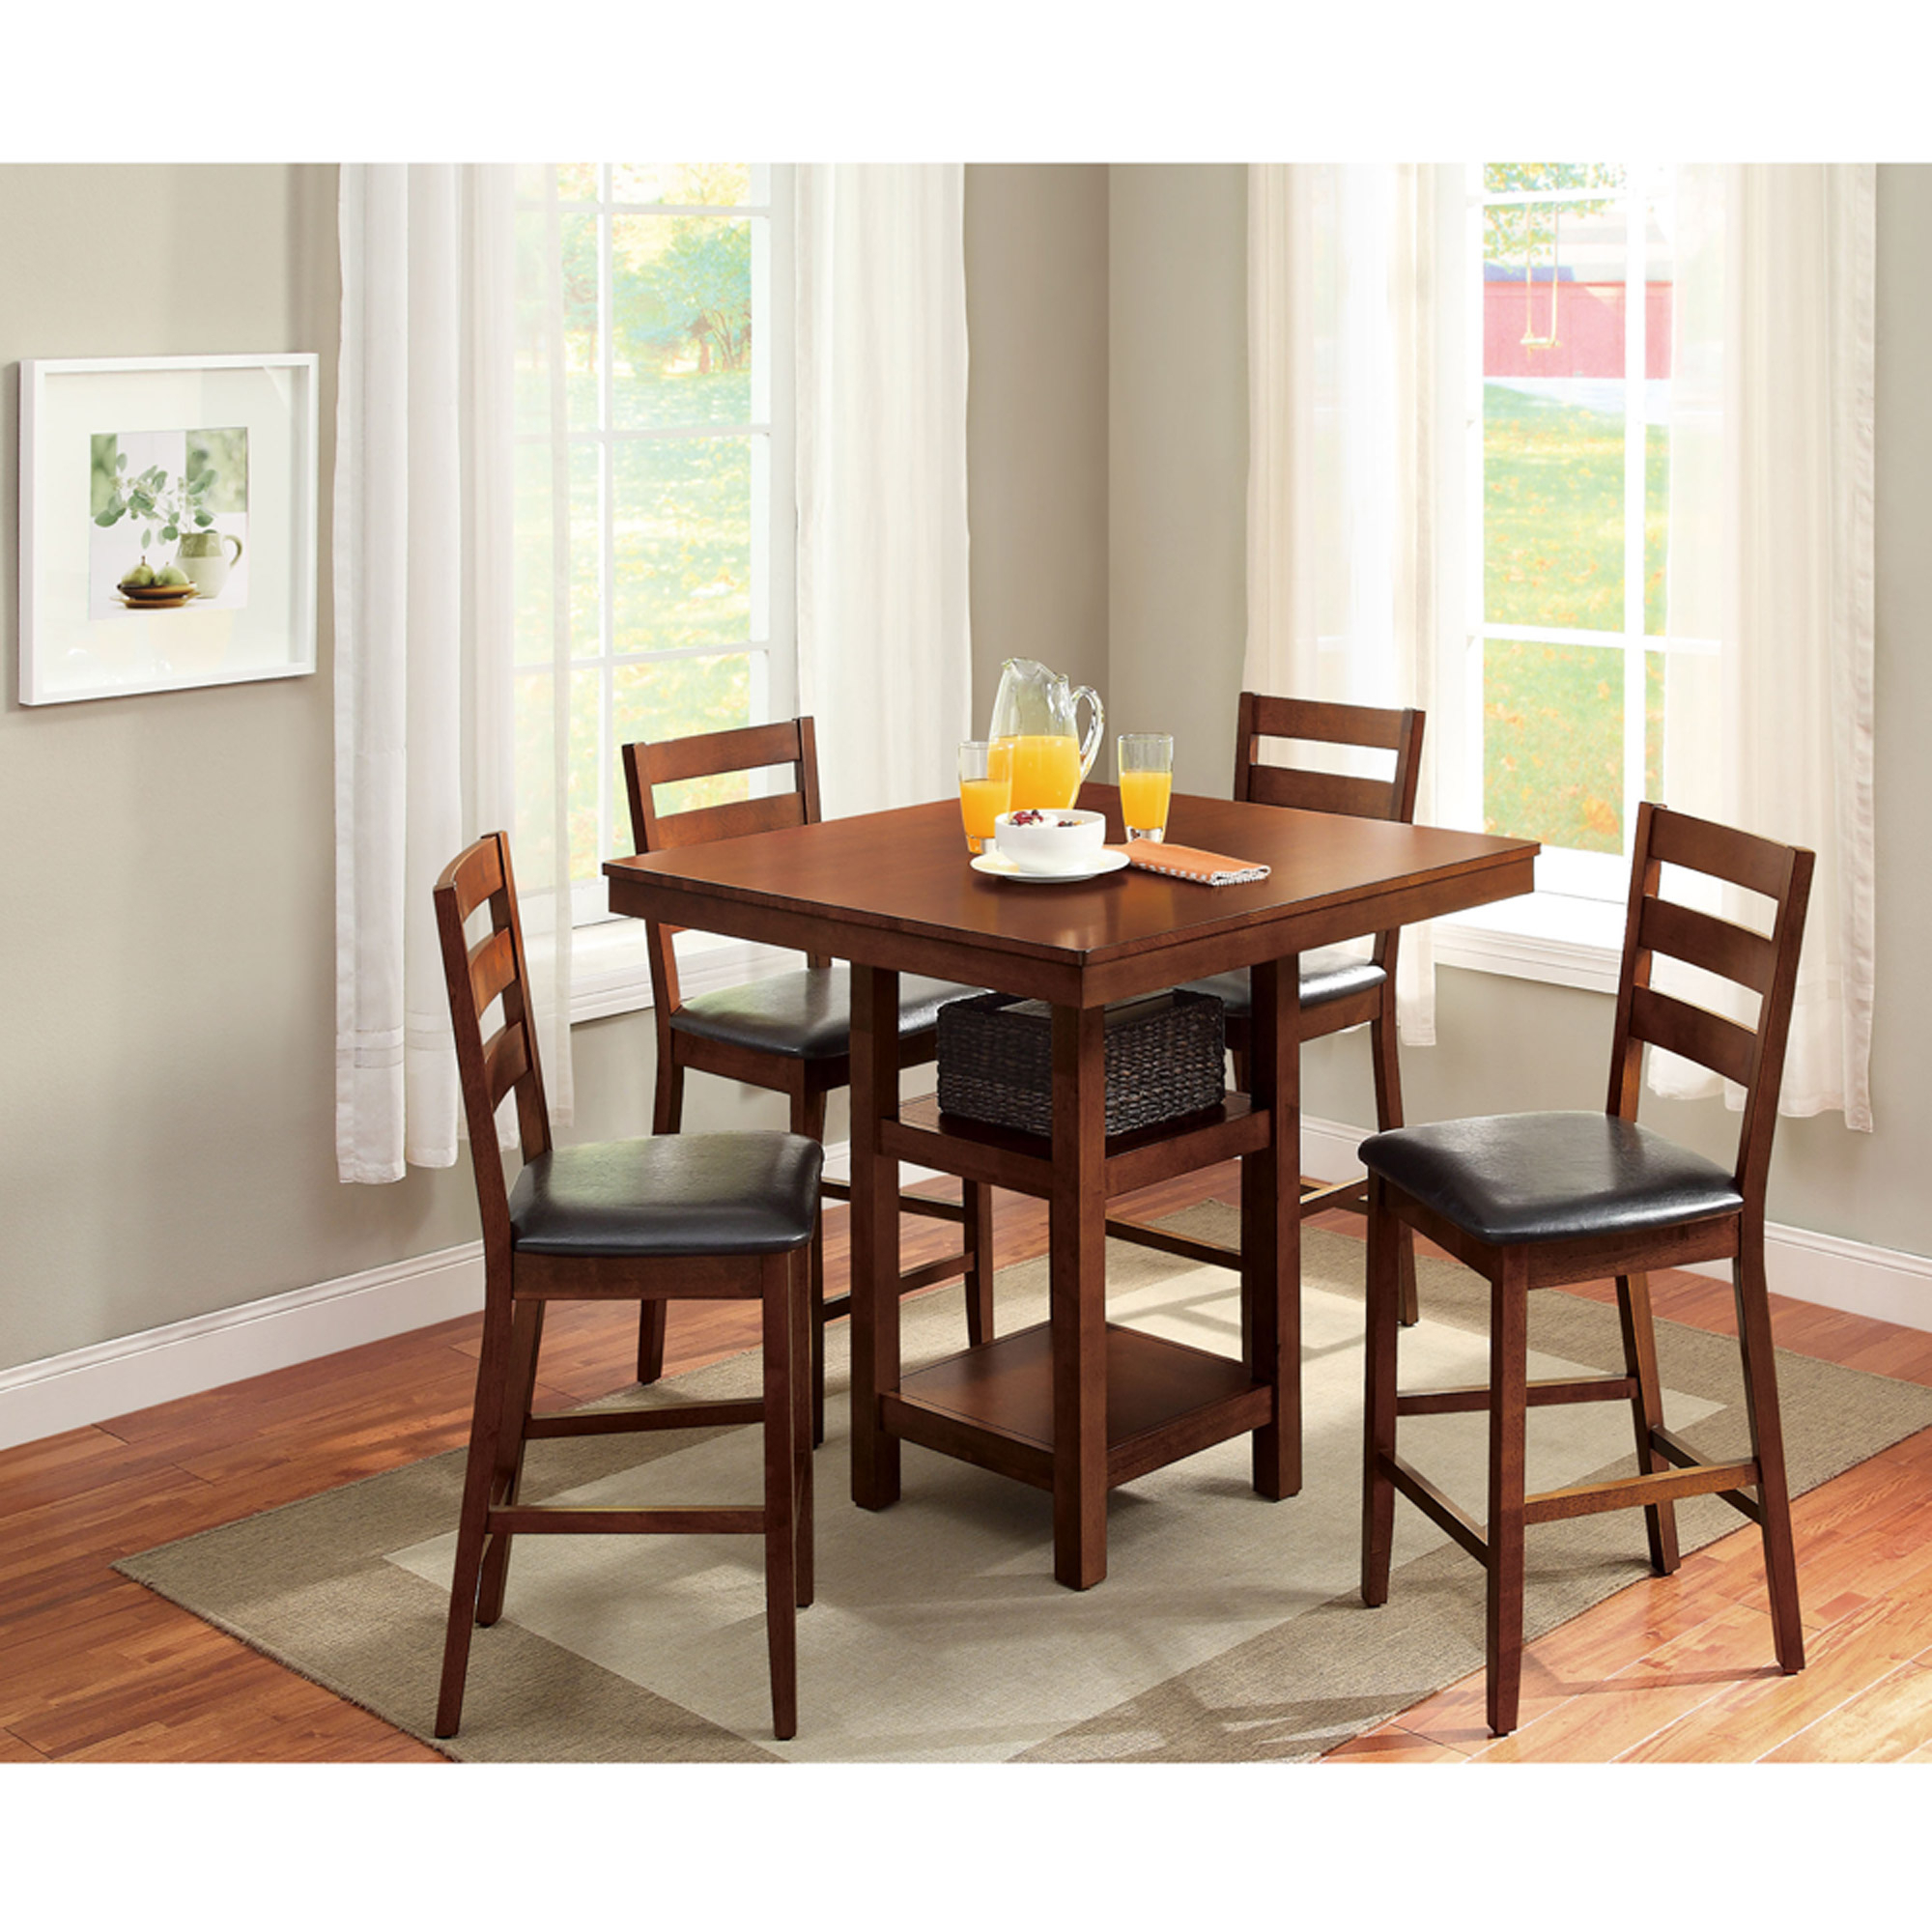 Metropolitan 3 Piece Dining Set, Multiple Finishes For Newest Rossiter 3 Piece Dining Sets (Photo 12 of 20)